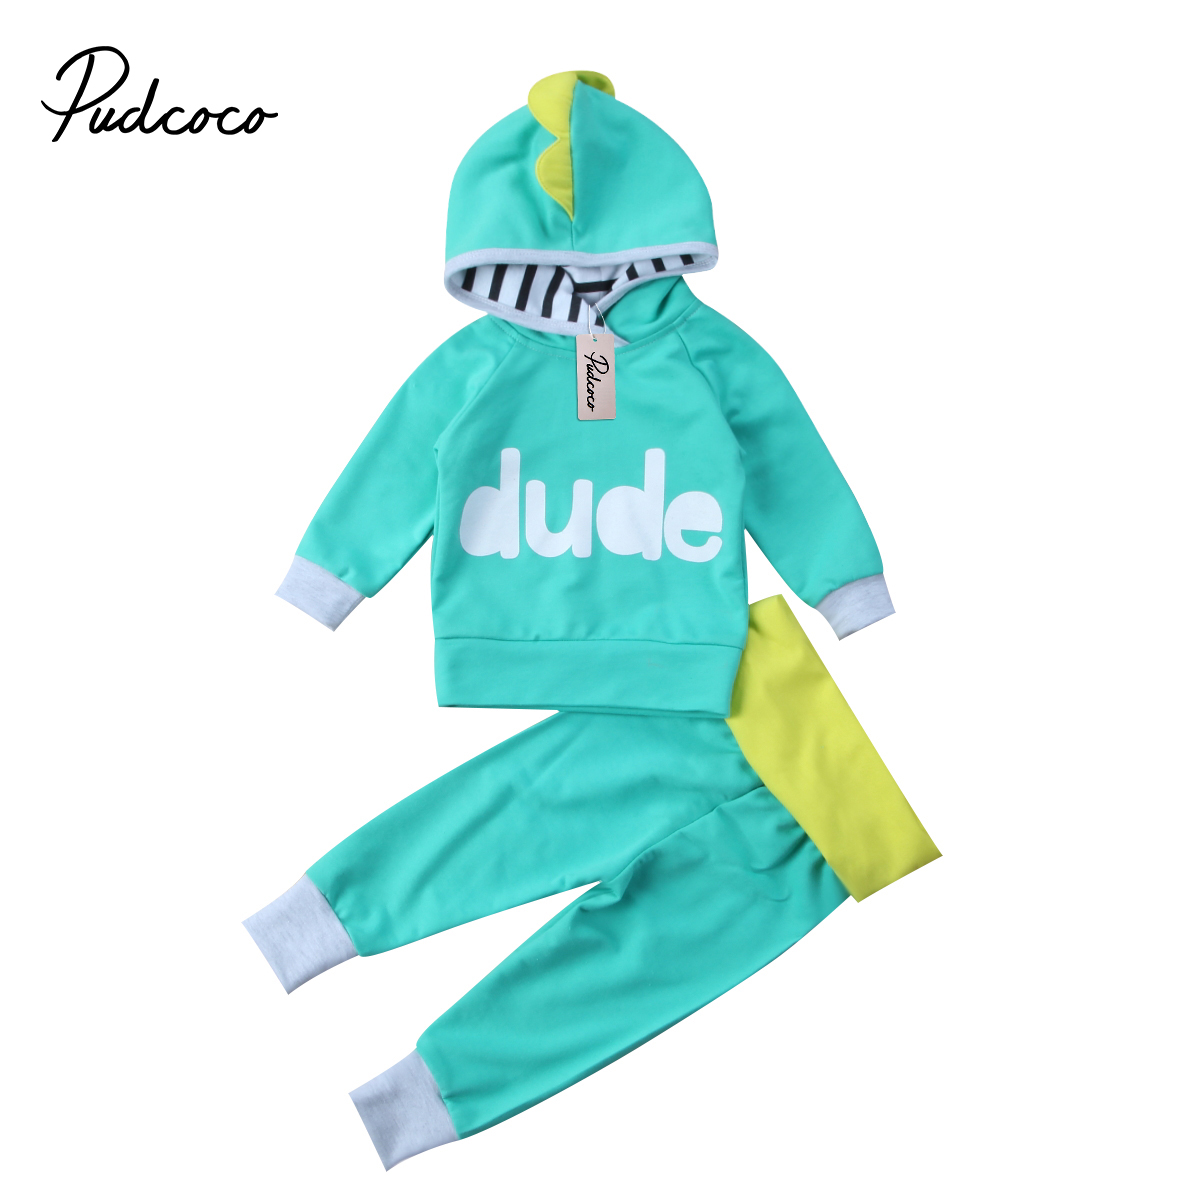 Pudcoco Newborn Baby Boy Girl Unisex Clothes Cotton Long Sleeve Hoodies Tops Pants Outfit Set 6-24Months Helen115